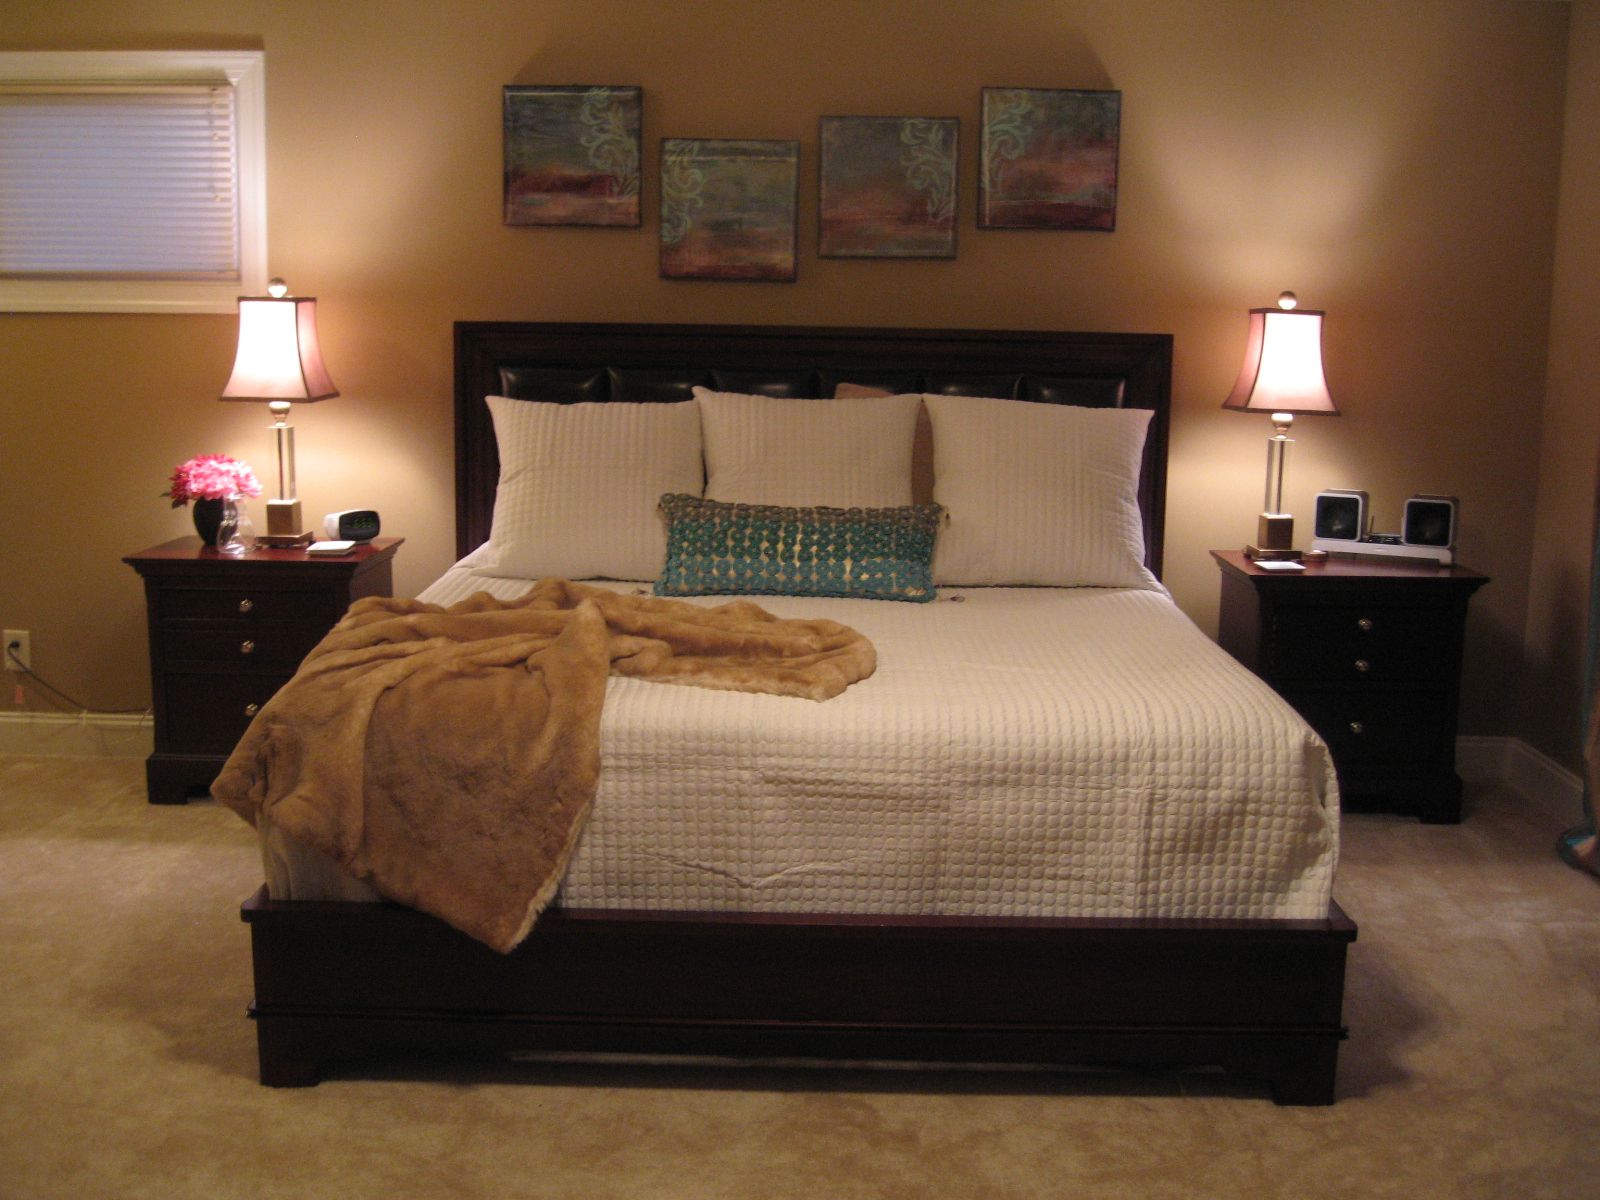 301 moved permanently - Master bedroom decorating tips ...